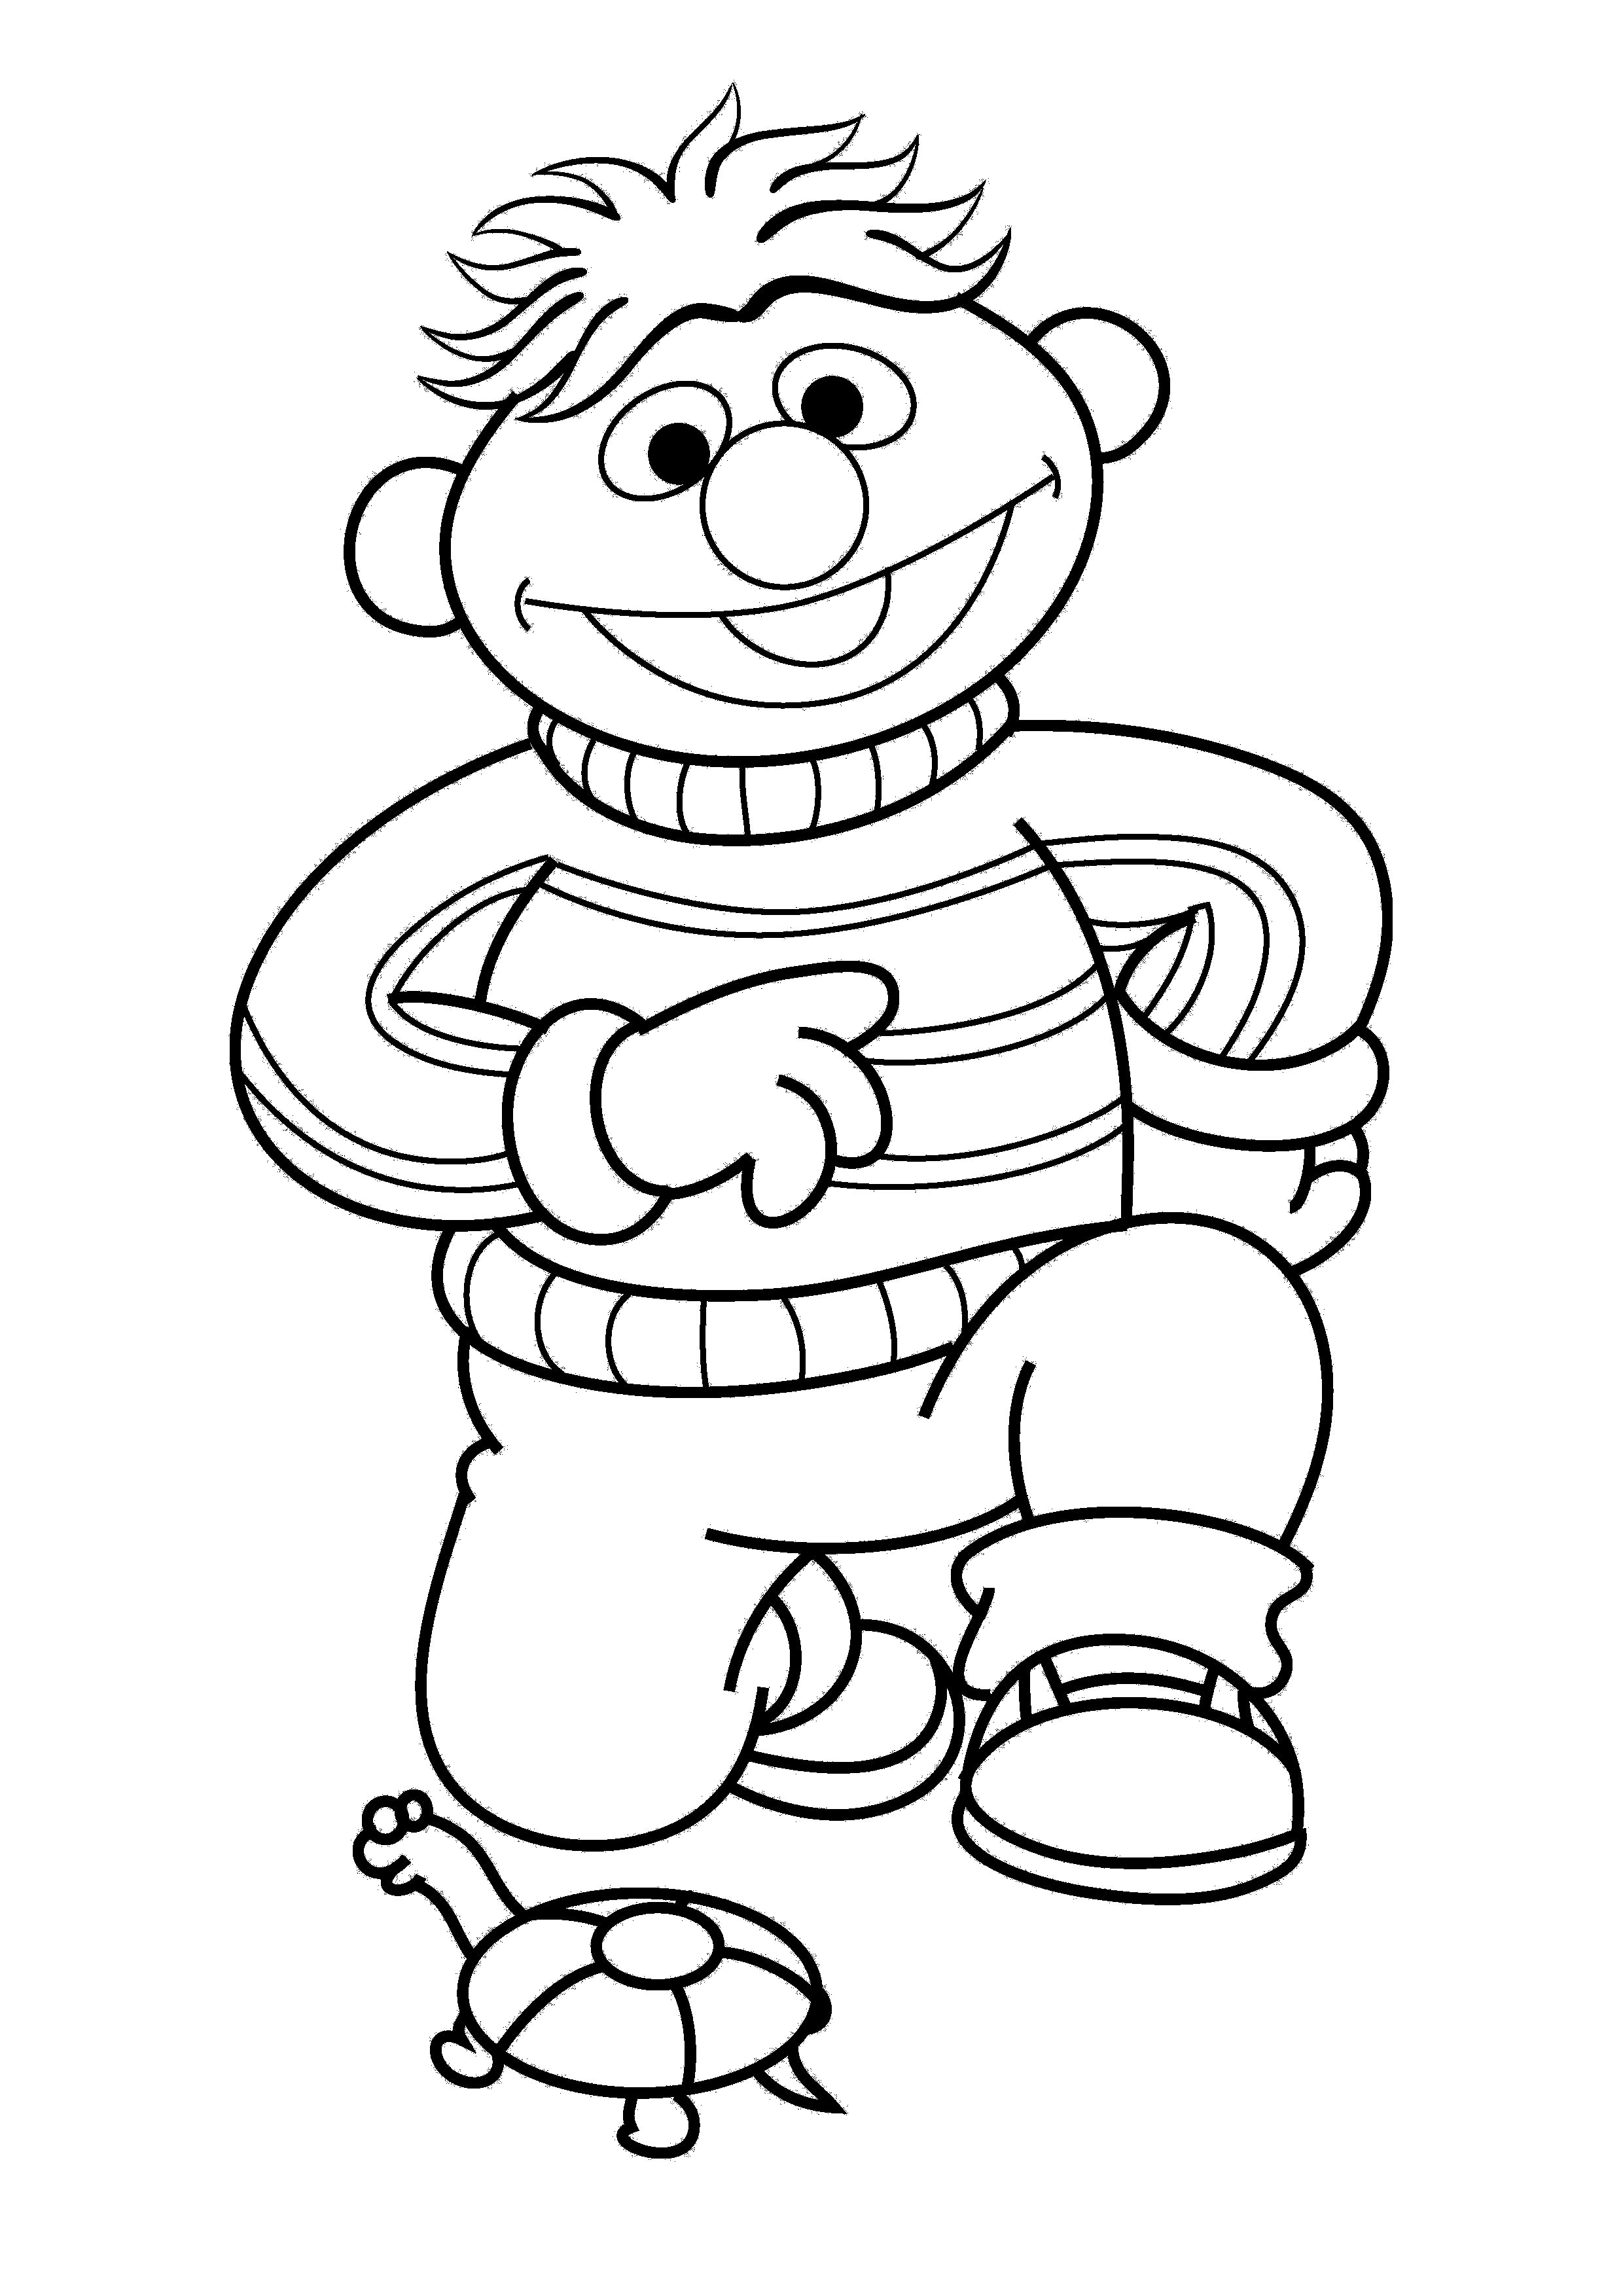 Ernie And A Turtle Coloring Pages For Kids Gip Printable Sesame Street Coloring Pages For Sesame Street Coloring Pages Turtle Coloring Pages Coloring Pages